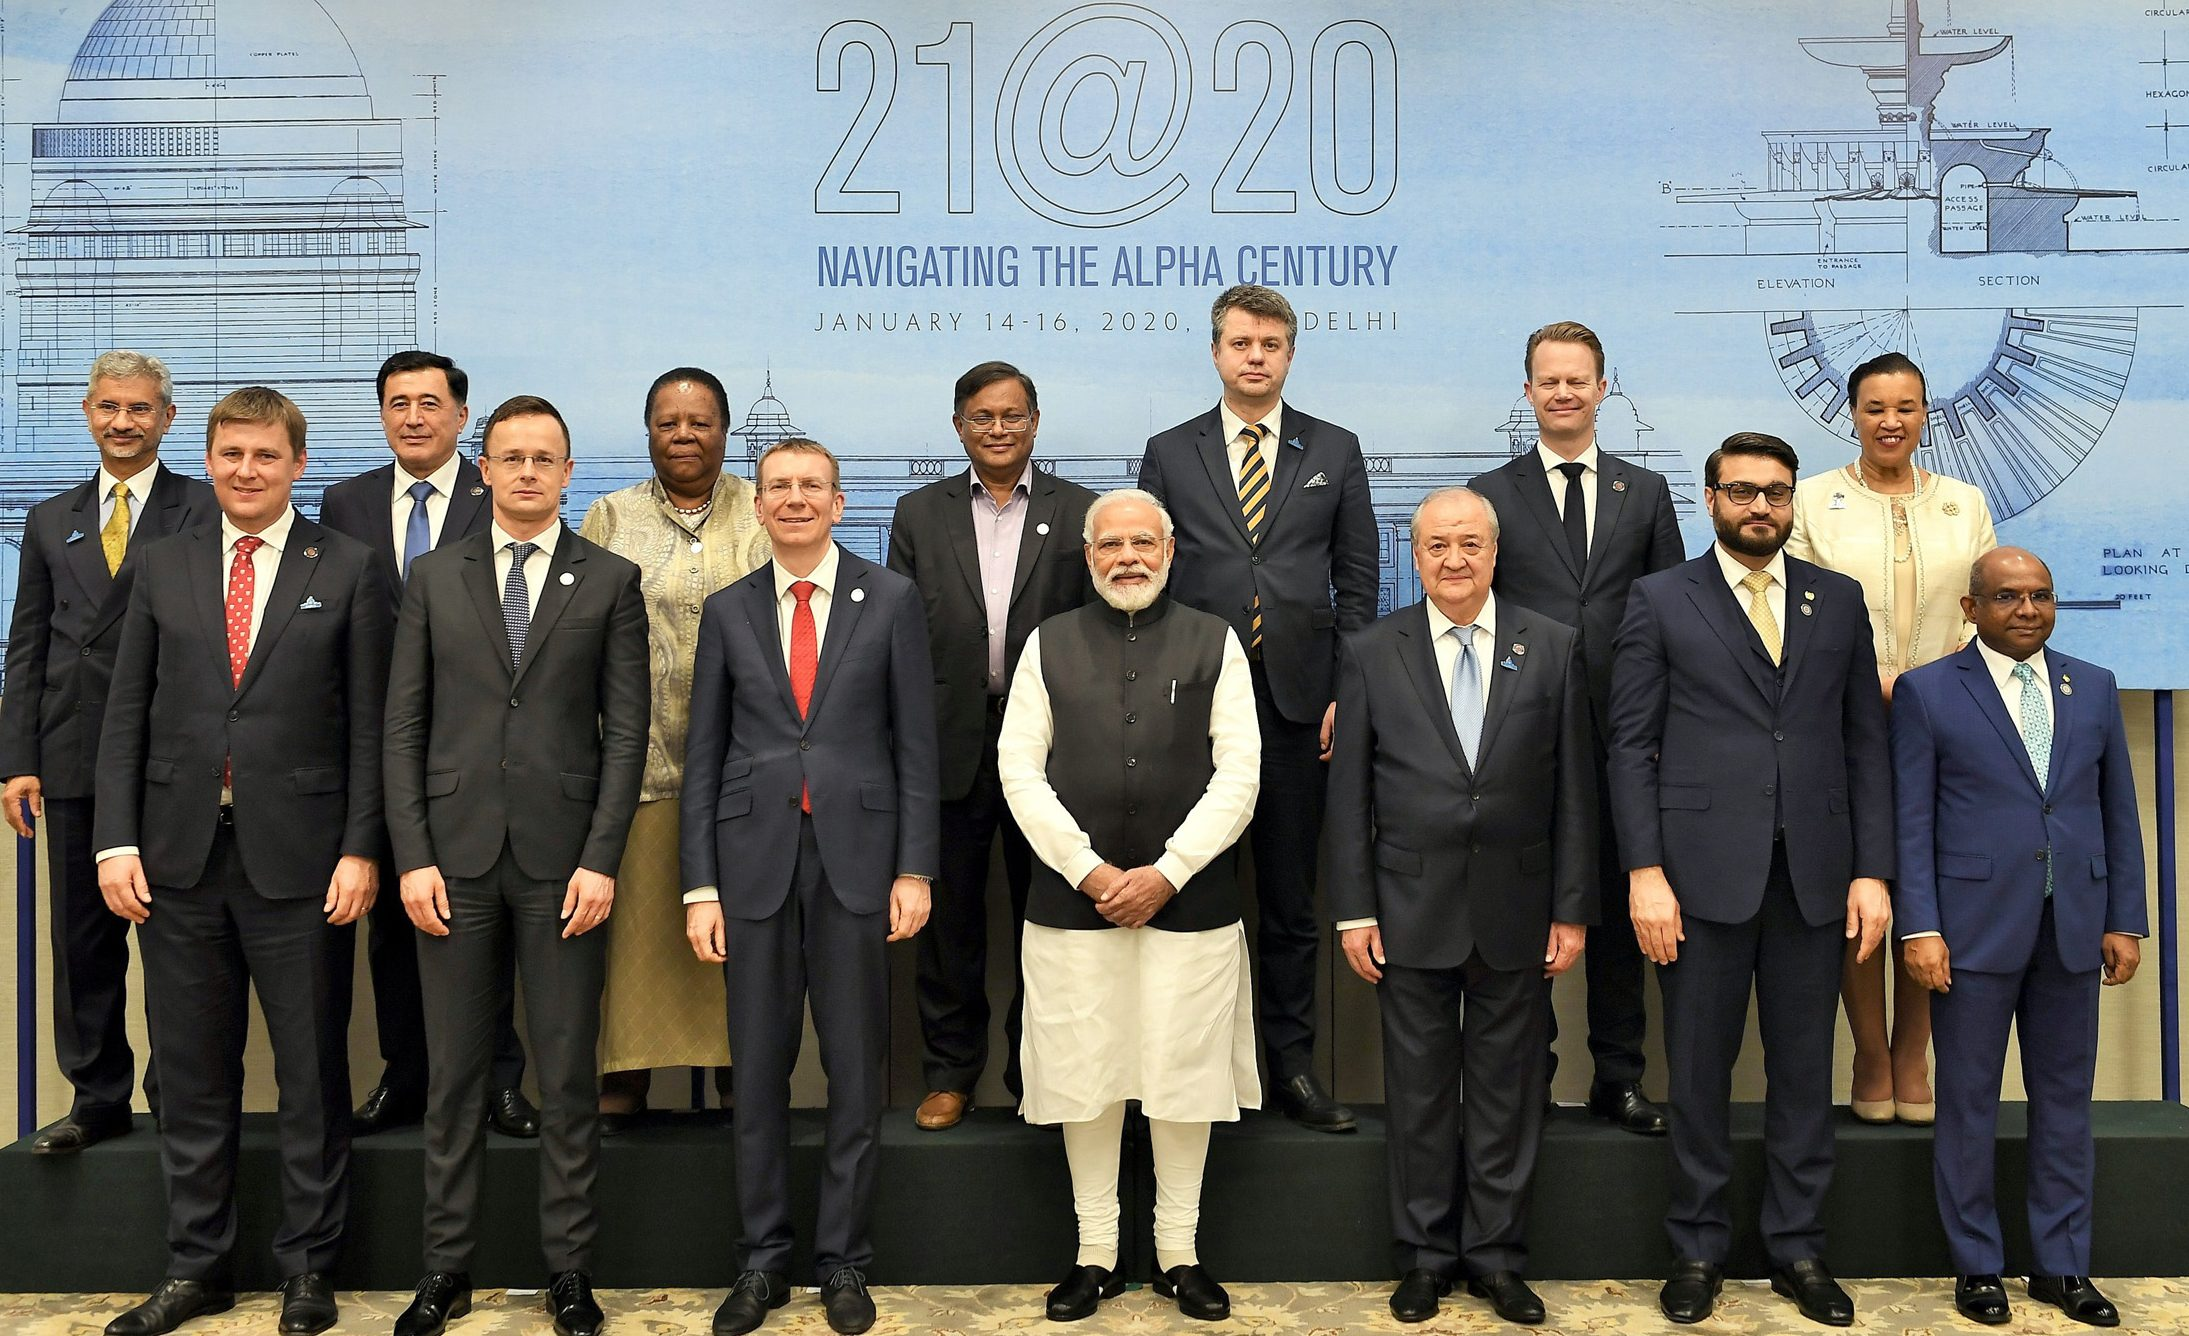 The Ministerial delegation from various countries, calling on the Prime Minister, Shri Narendra Modi, on the sidelines of the Raisina Dialogue 2020, in New Delhi on January 15, 2020.